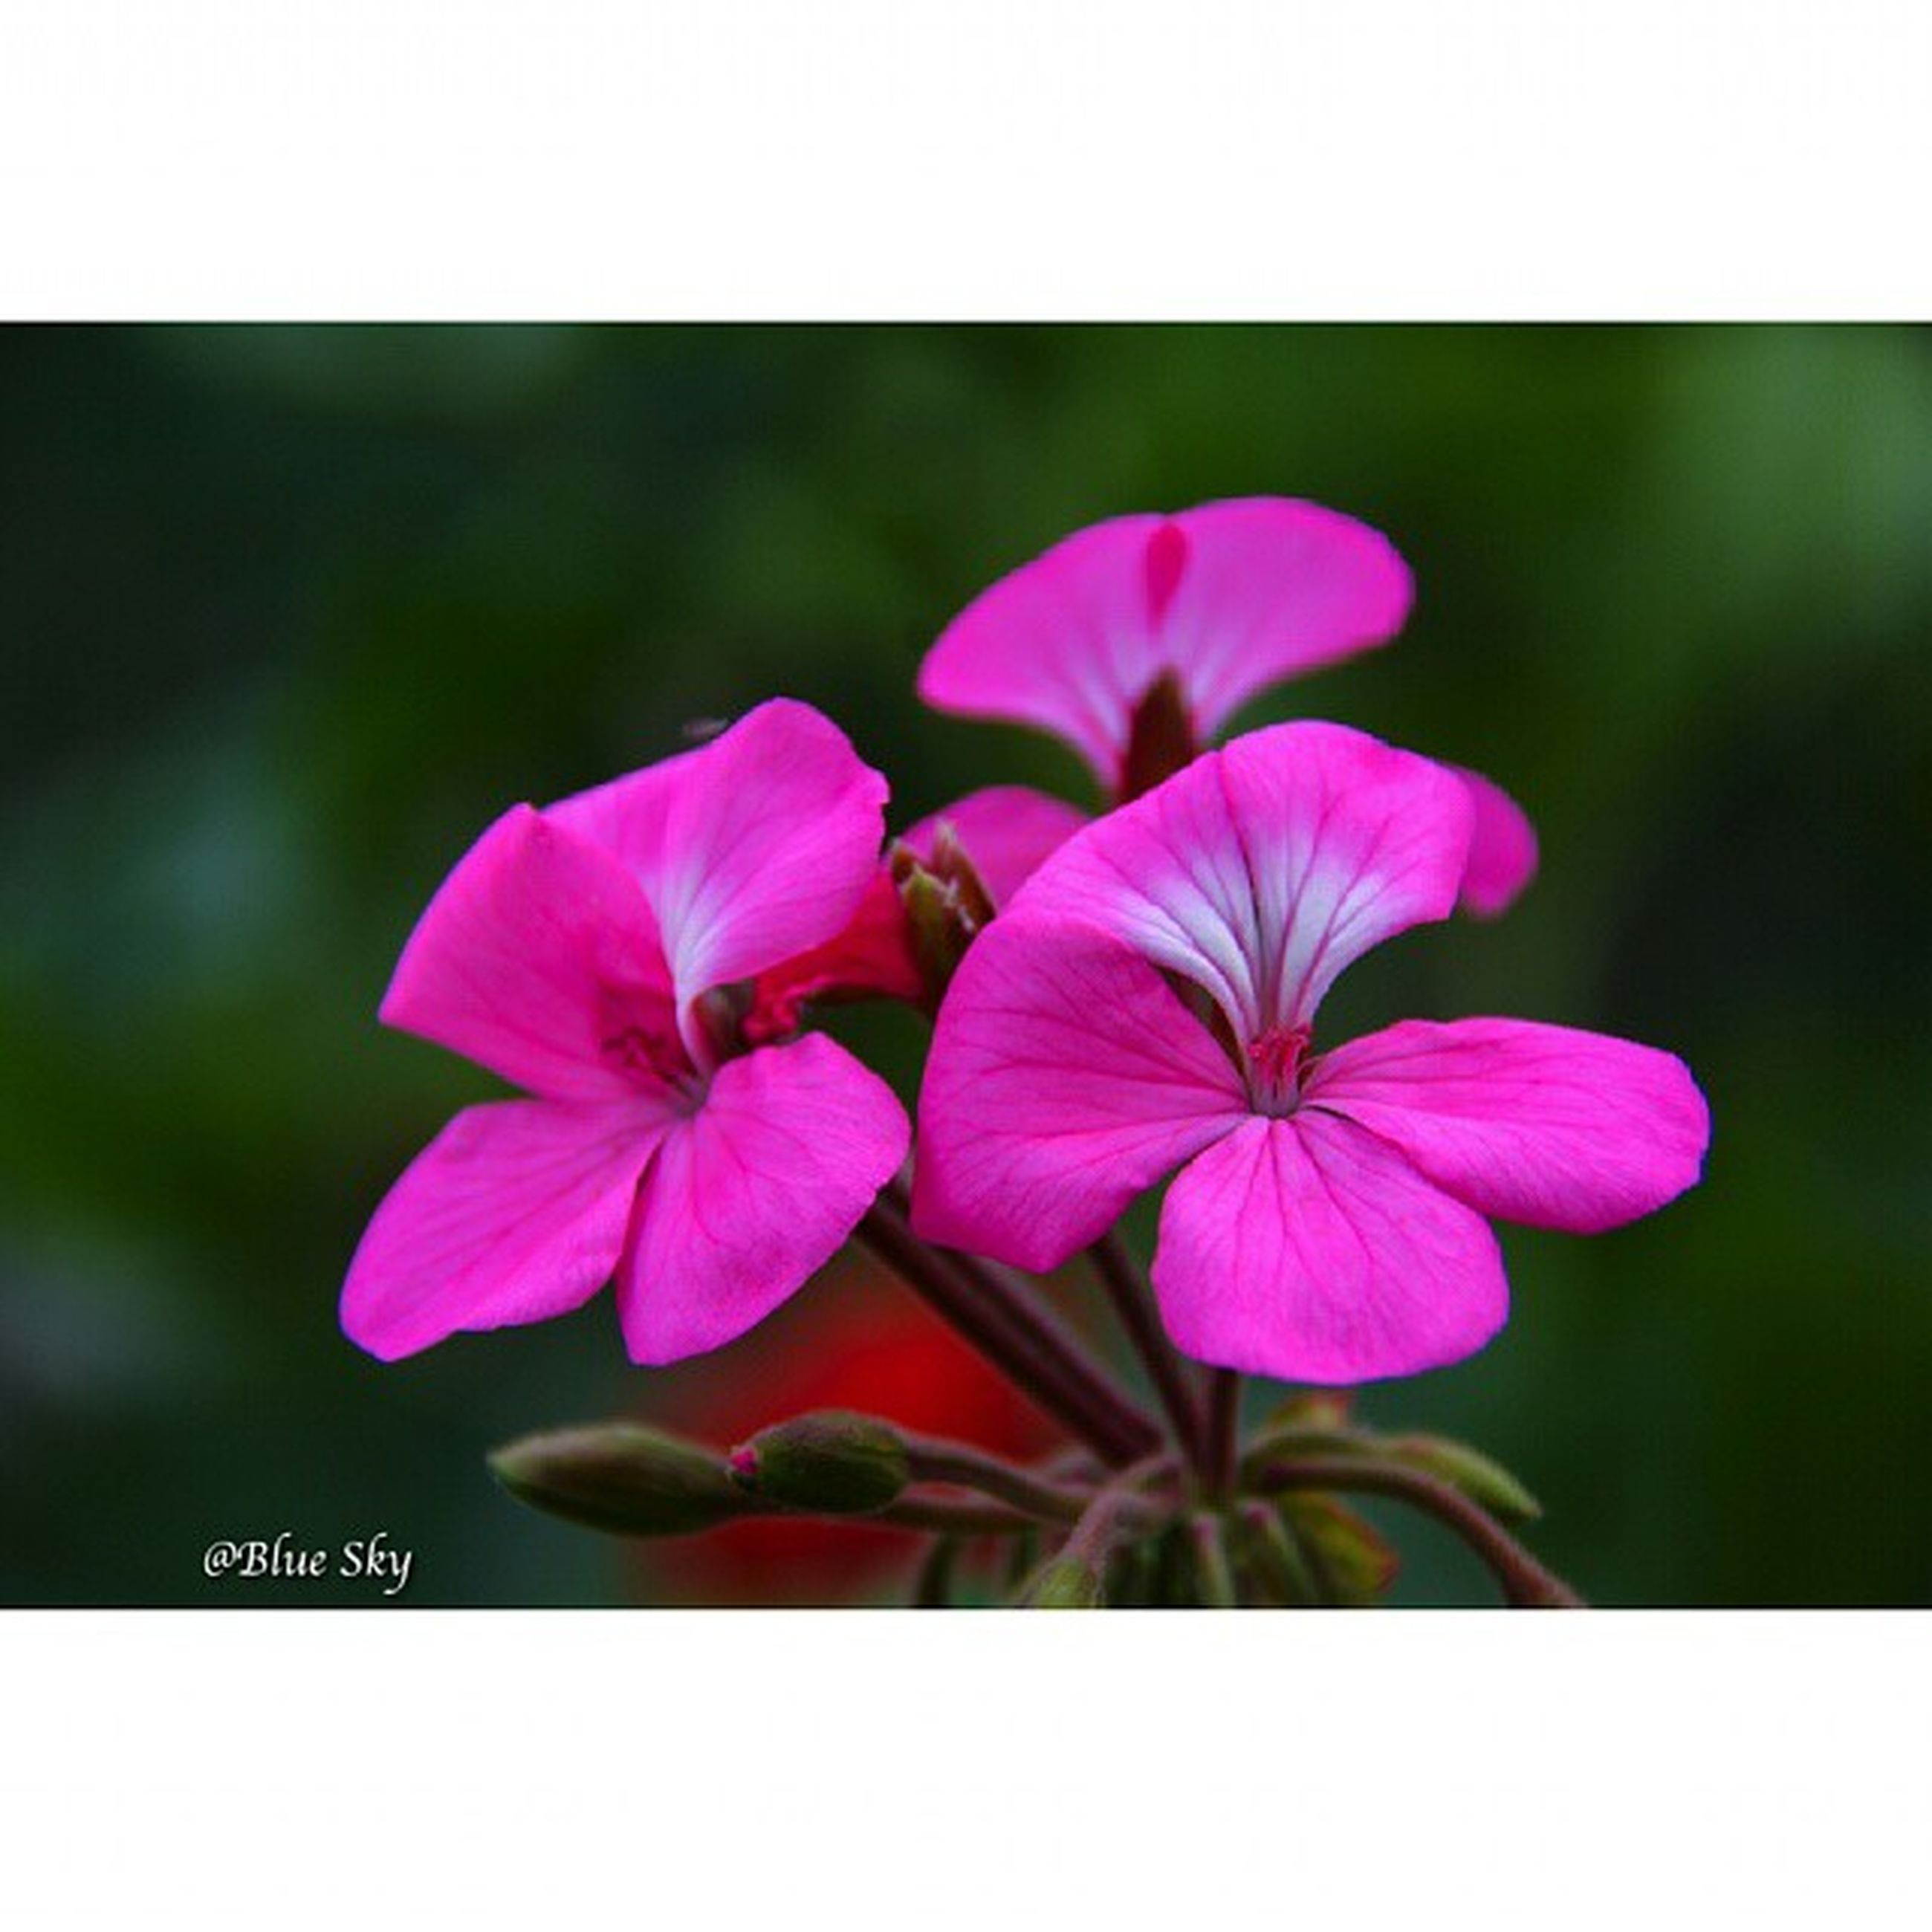 flower, freshness, petal, fragility, transfer print, flower head, growth, focus on foreground, beauty in nature, close-up, auto post production filter, nature, blooming, pink color, purple, plant, blossom, stem, stamen, in bloom